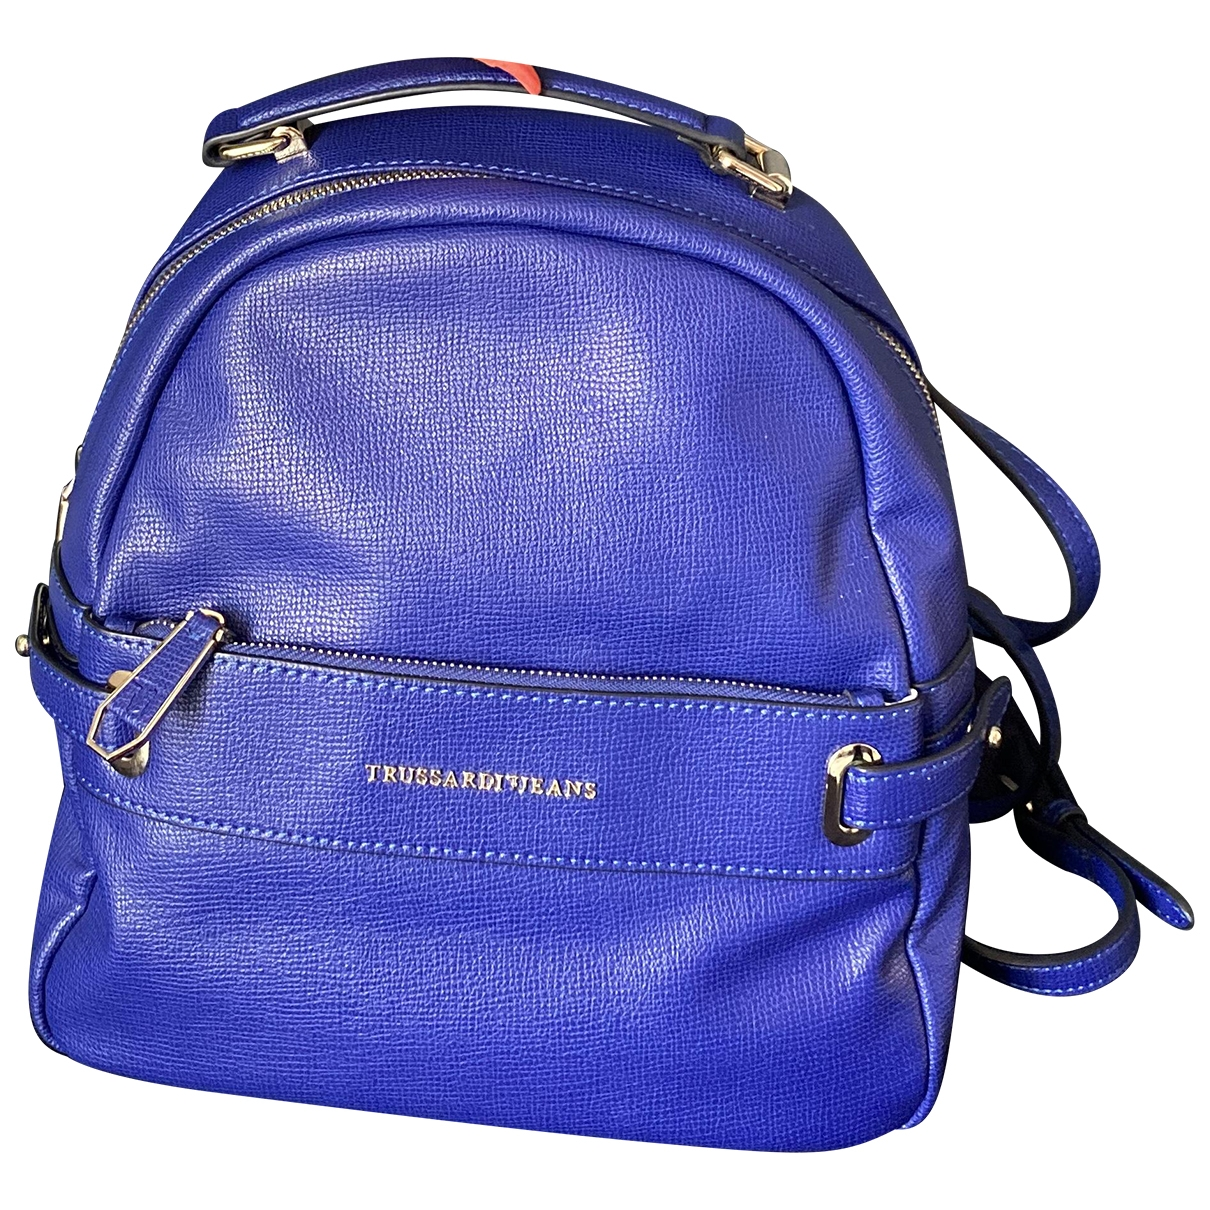 Trussardi Jeans \N Blue Leather backpack for Women \N